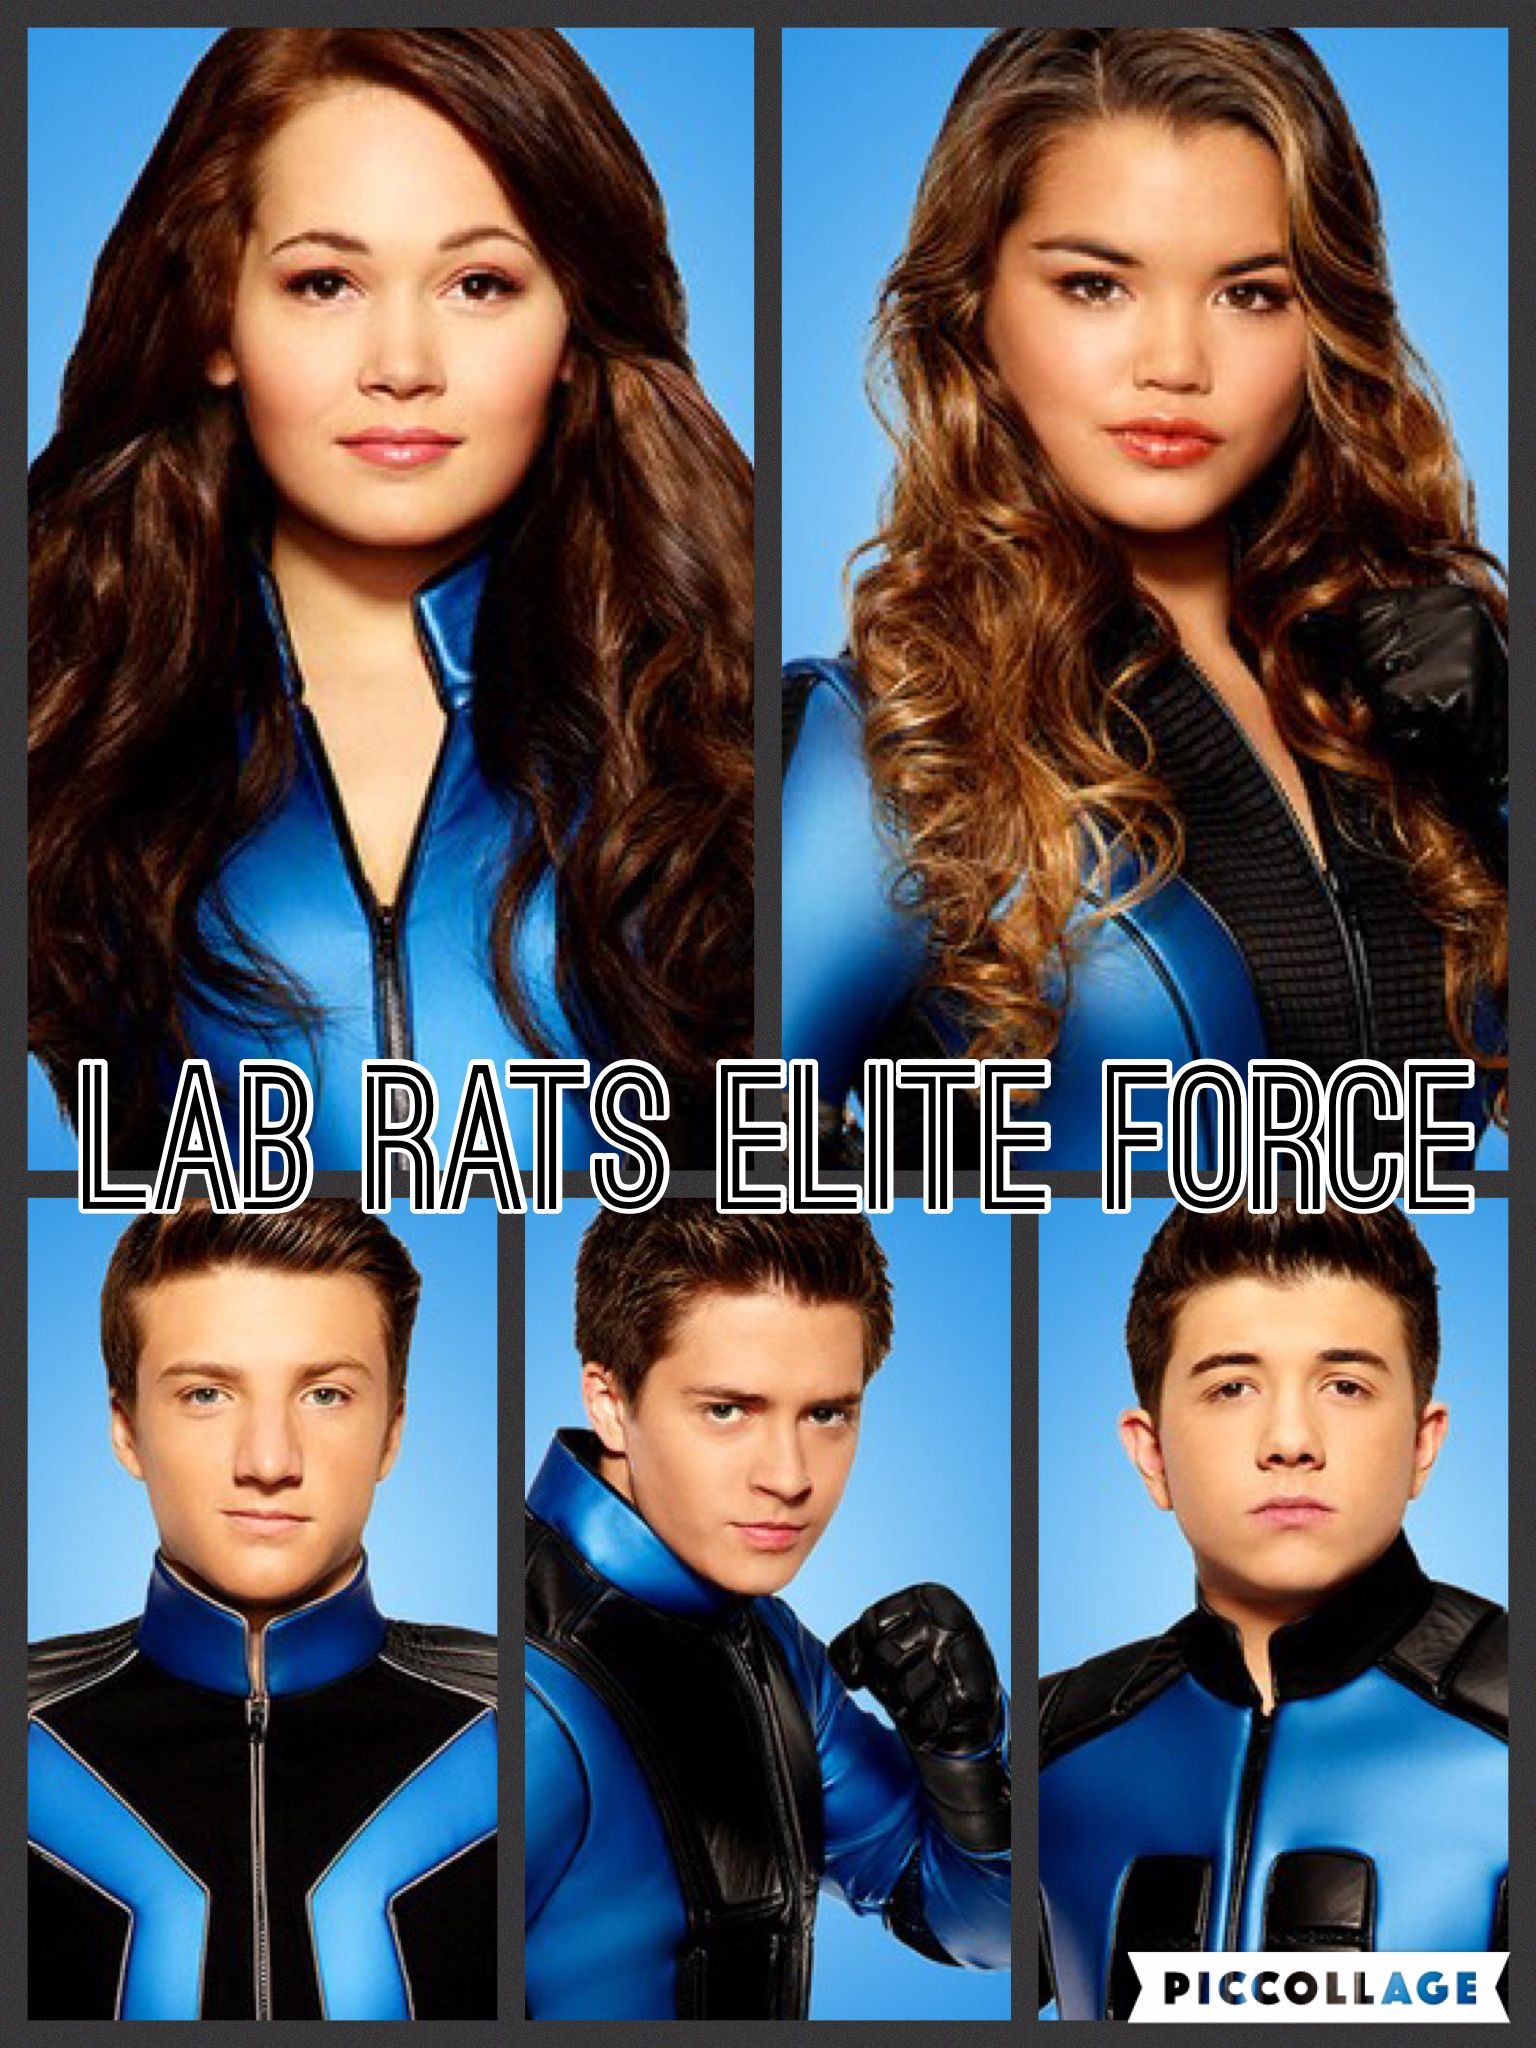 Pin by Brooke Howell on Disney Channel Lab rats disney